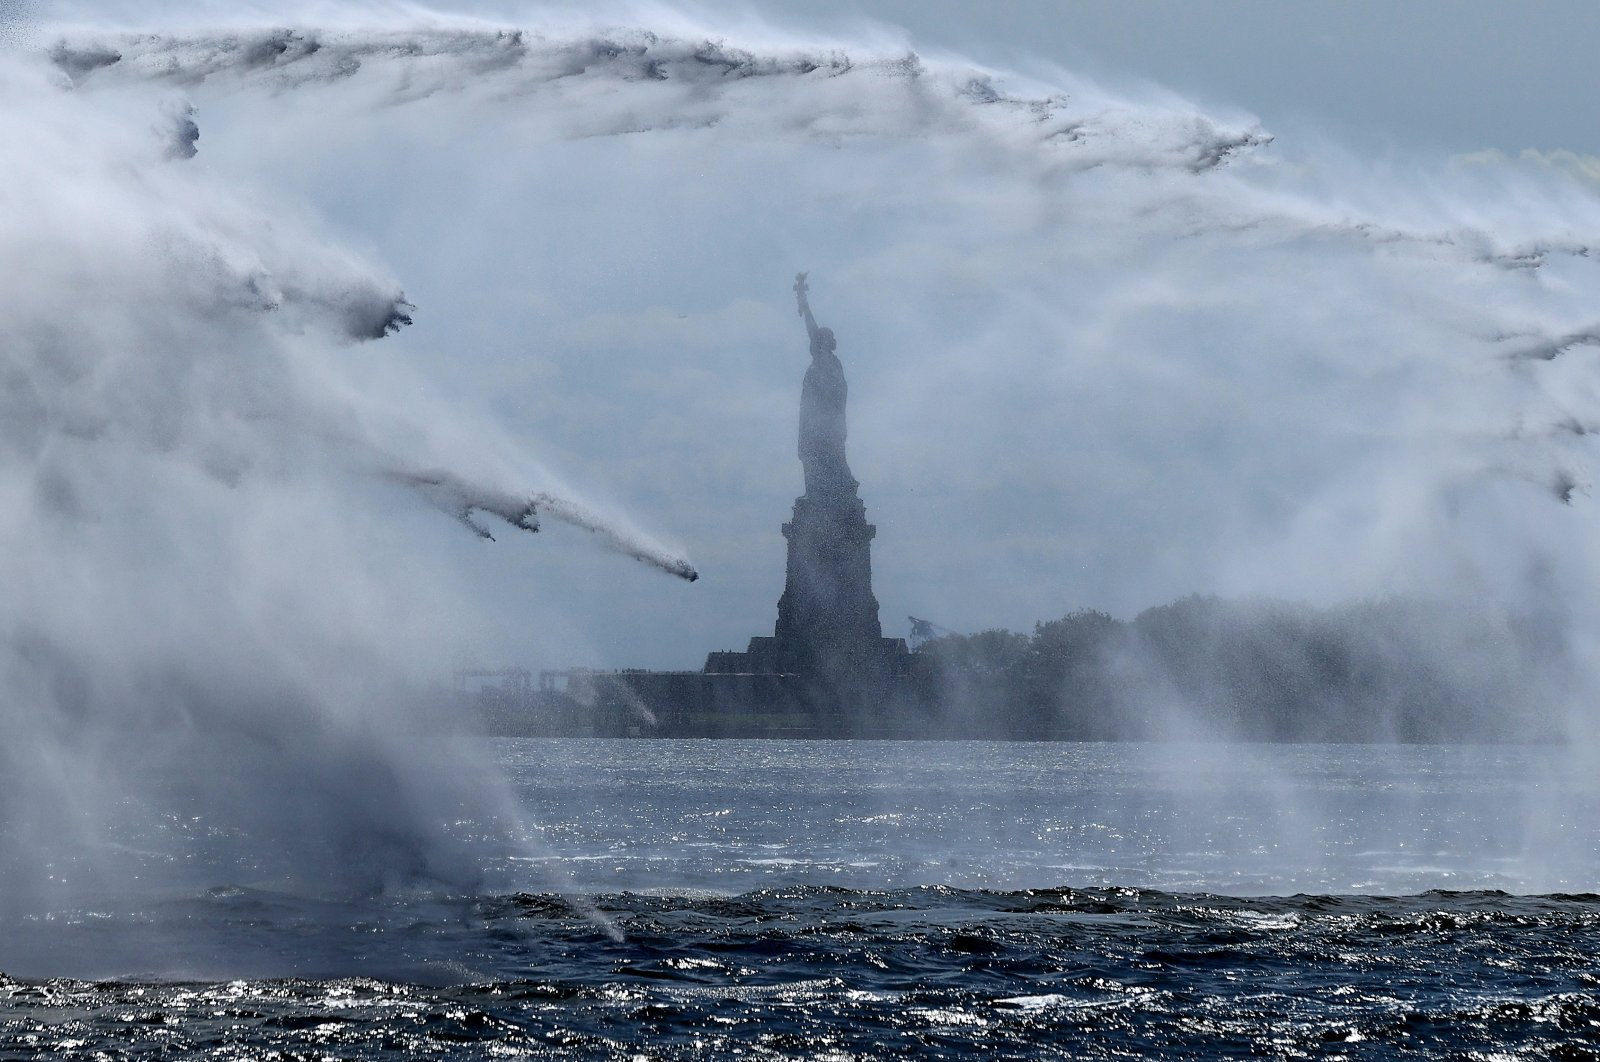 The Statue of Liberty is seen through the spray created during the 20th-anniversary commemoration of 9/11 along Lower Manhattan, New York City., U.S., Sept. 10, 2021. (Photo by Getty Images)